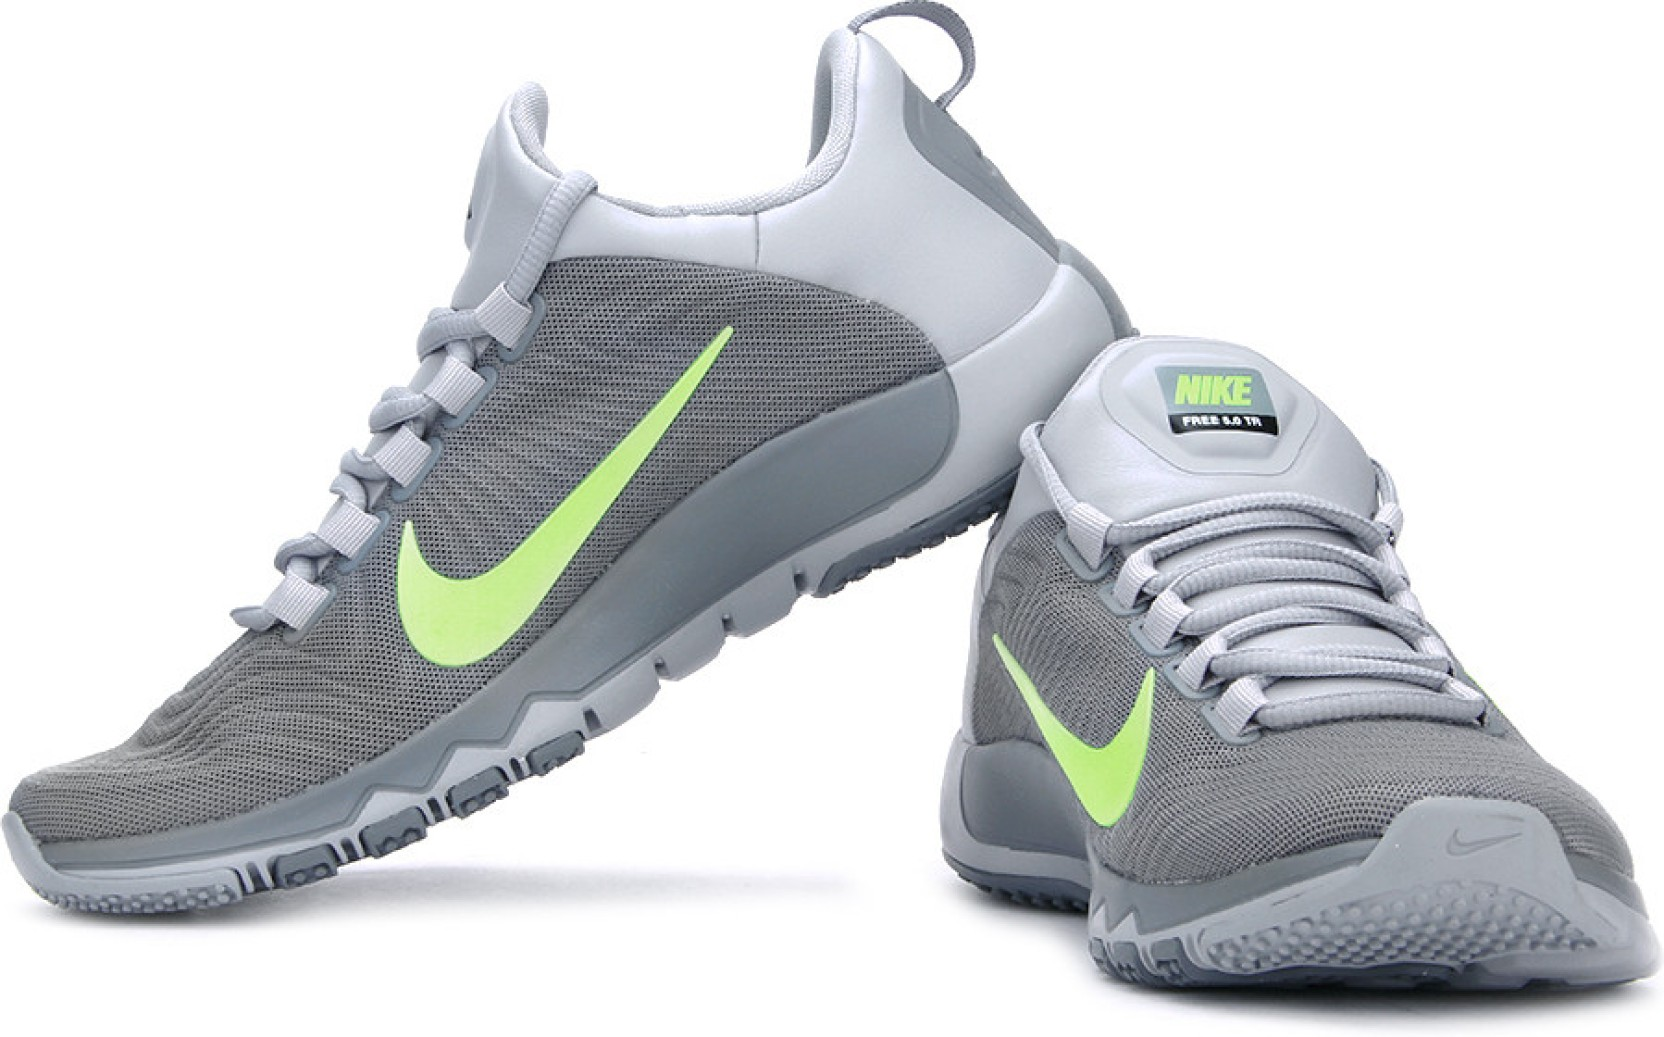 nike free trainer 5.0 buy online india